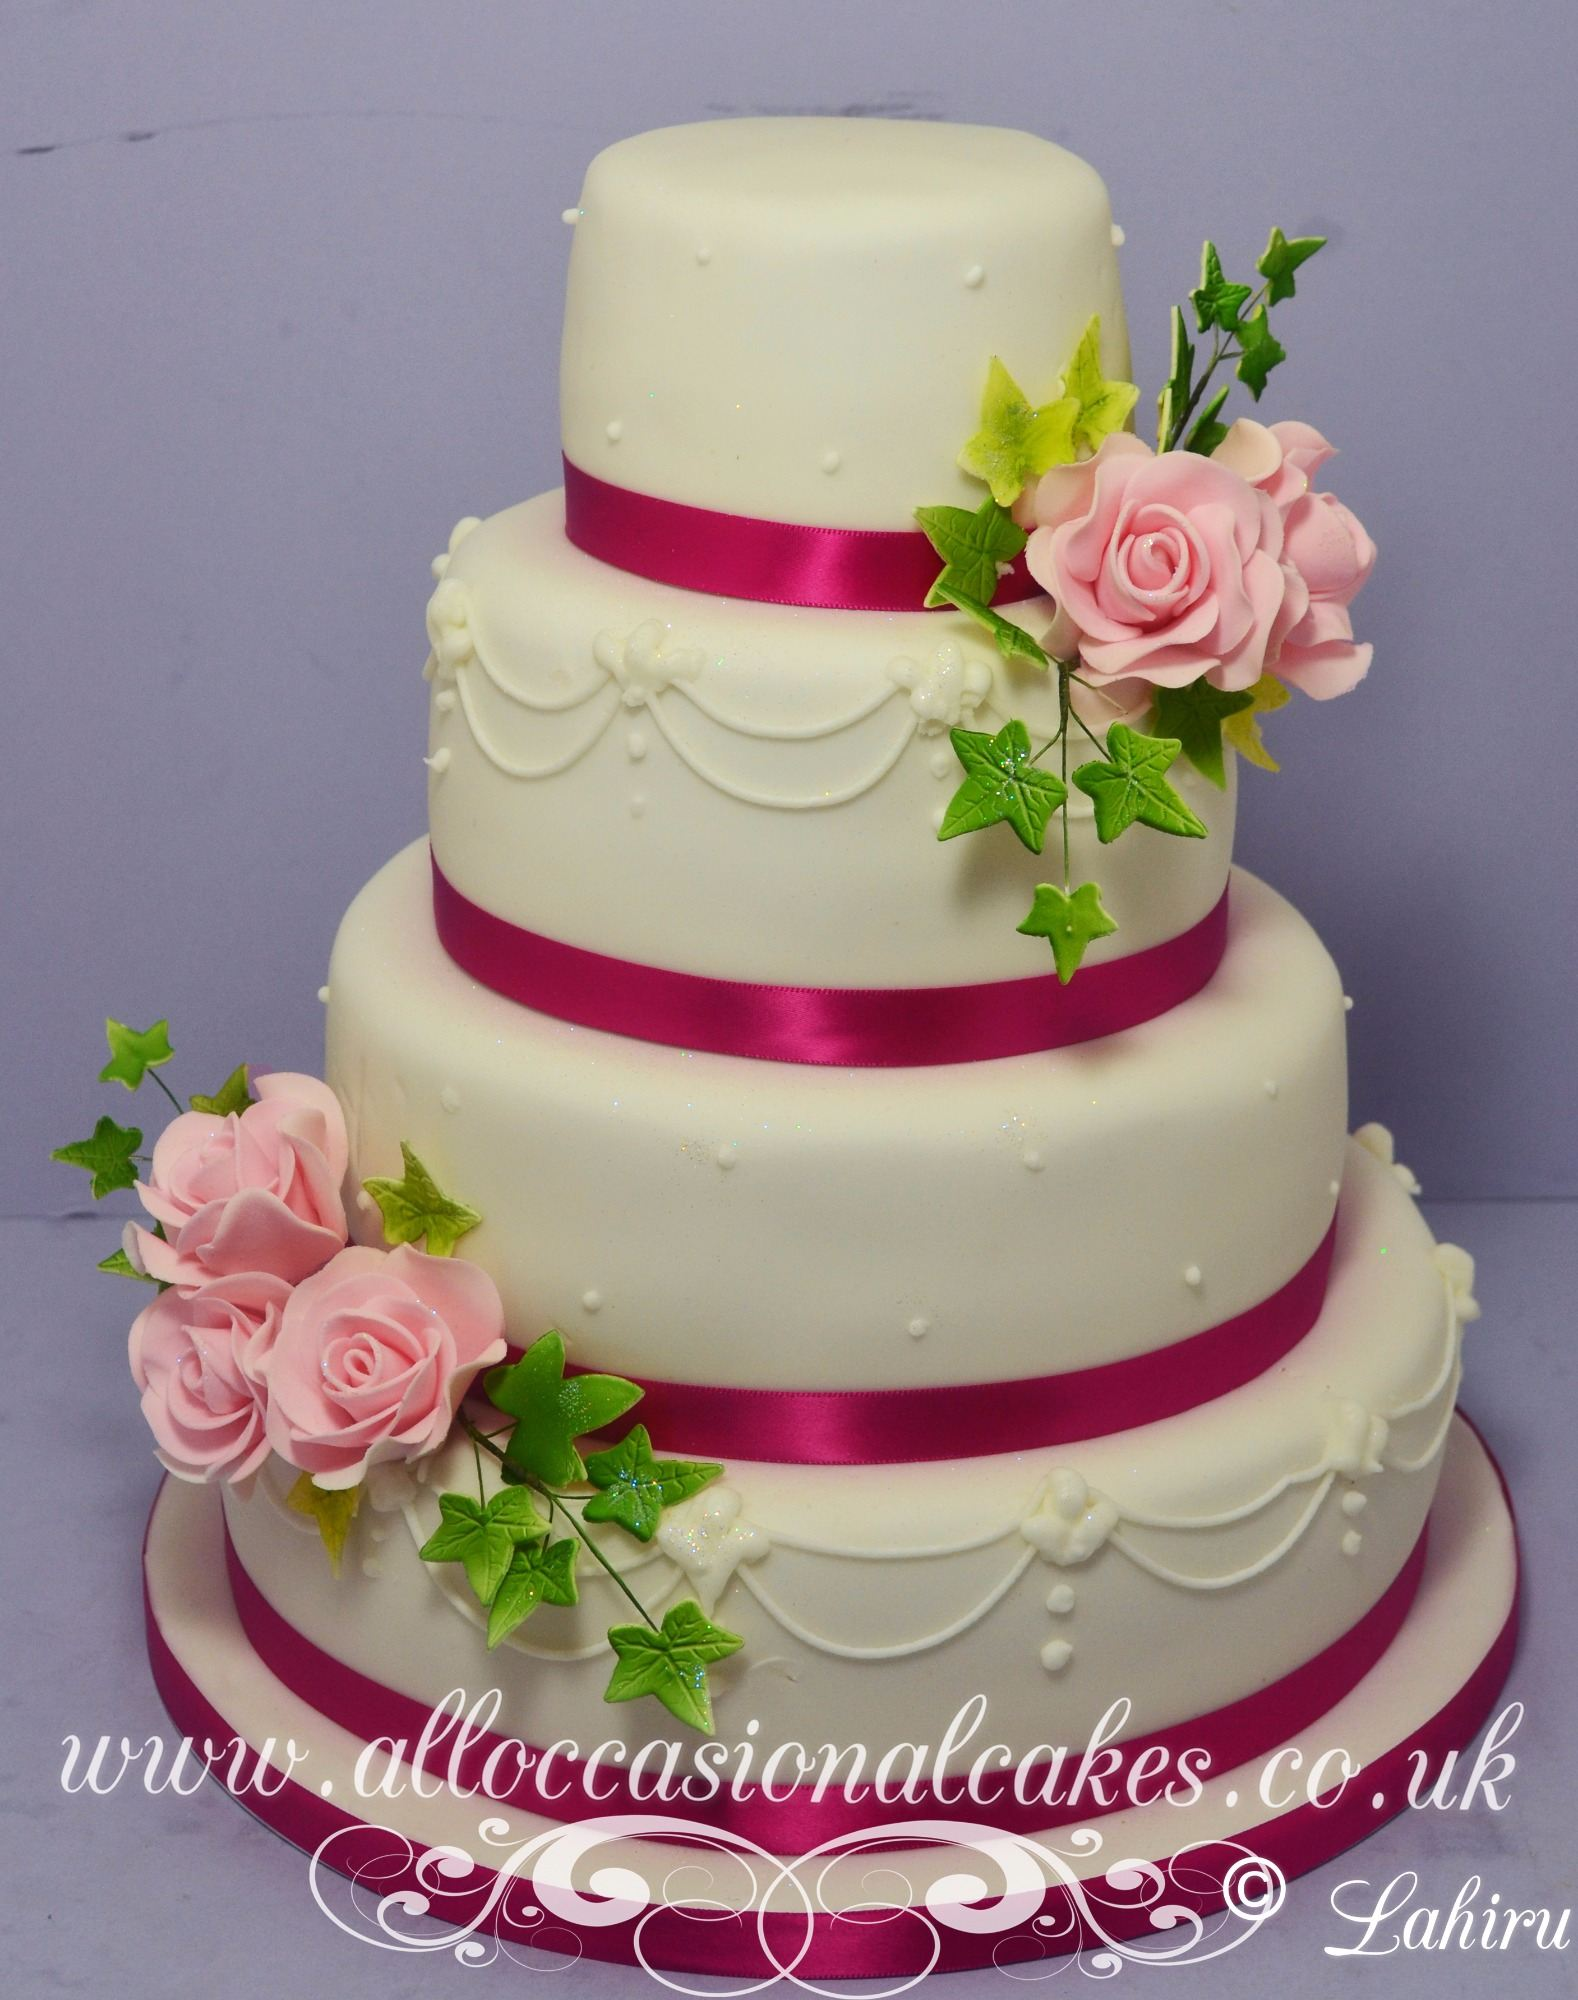 Hot pink trime & roses elegant wedding cake Bristol